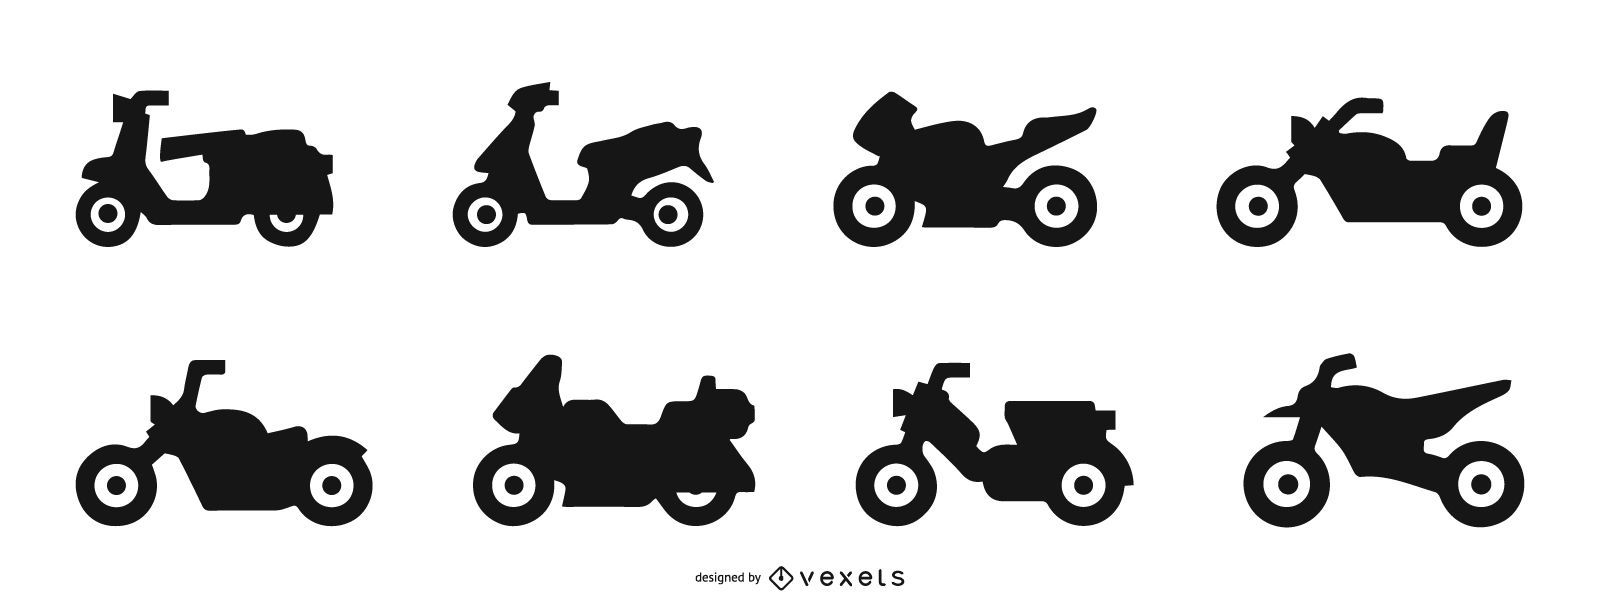 Motorcycle silhouette set